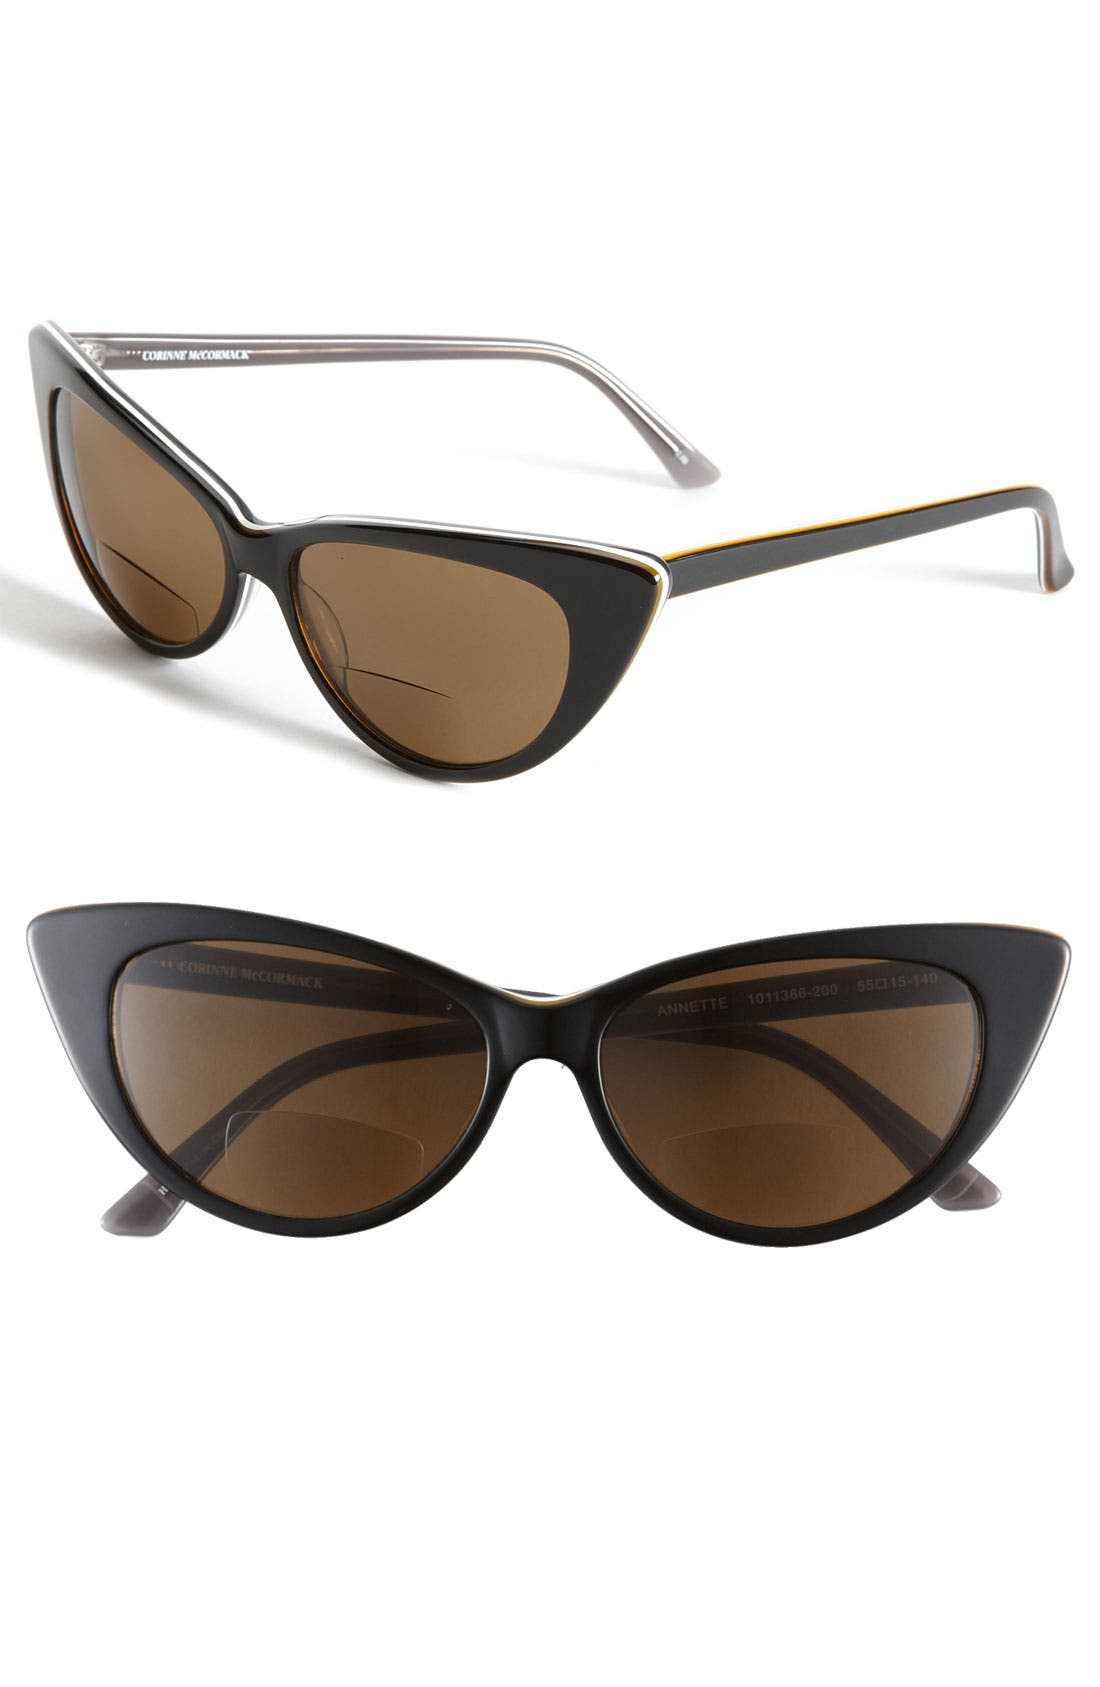 Main Image - Corinne McCormack Reading Sunglasses (2 for $88)